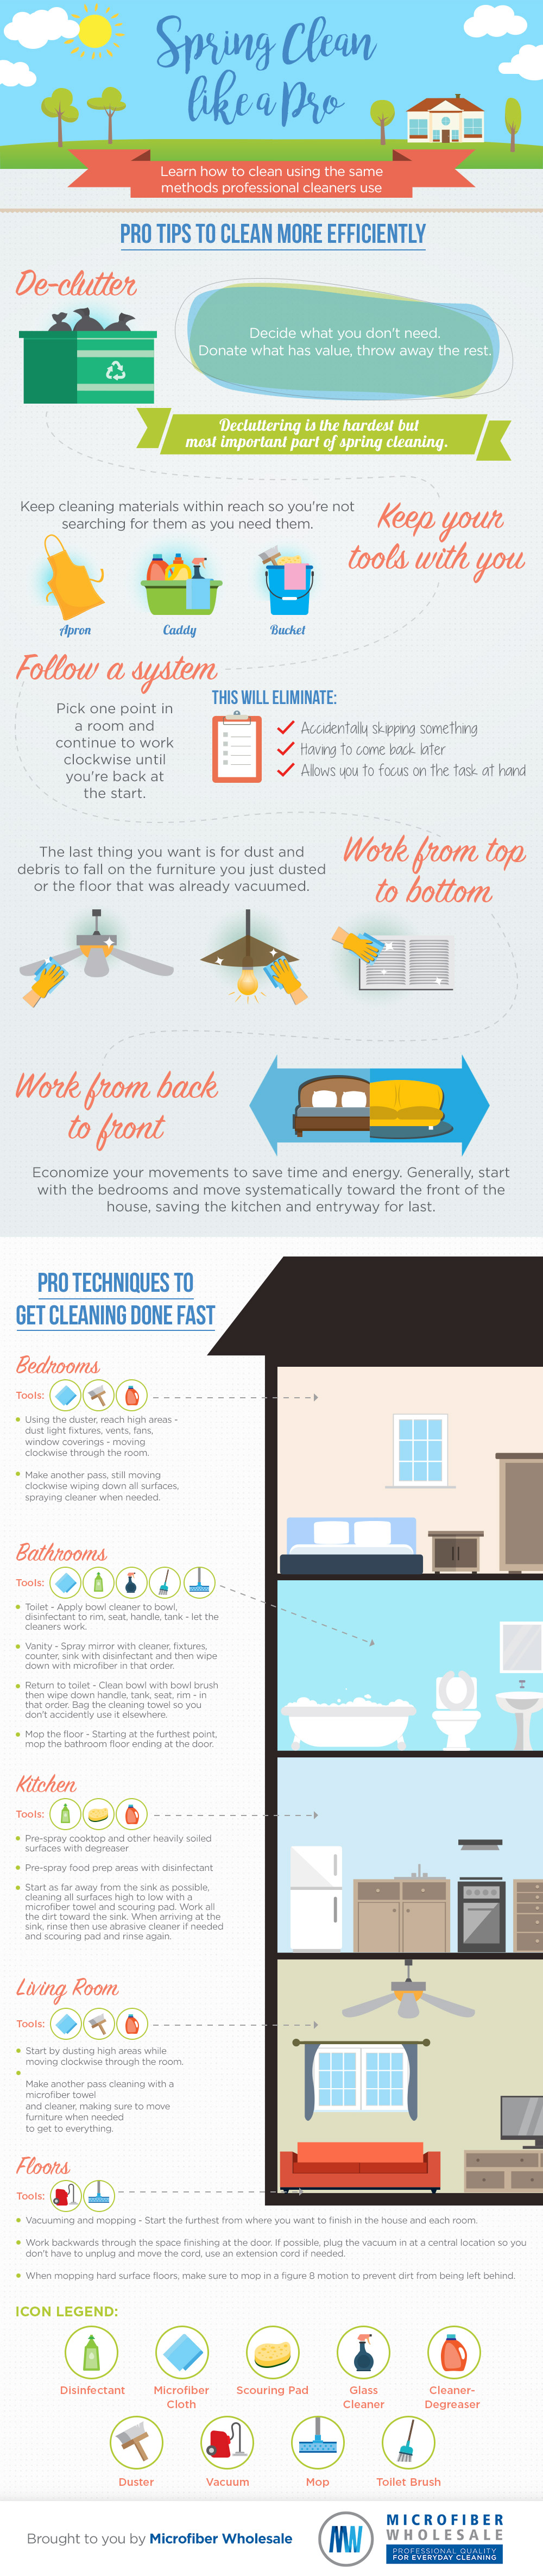 Make Light Work of Cleaning with this 'Spring Clean Like a Pro' Infographic